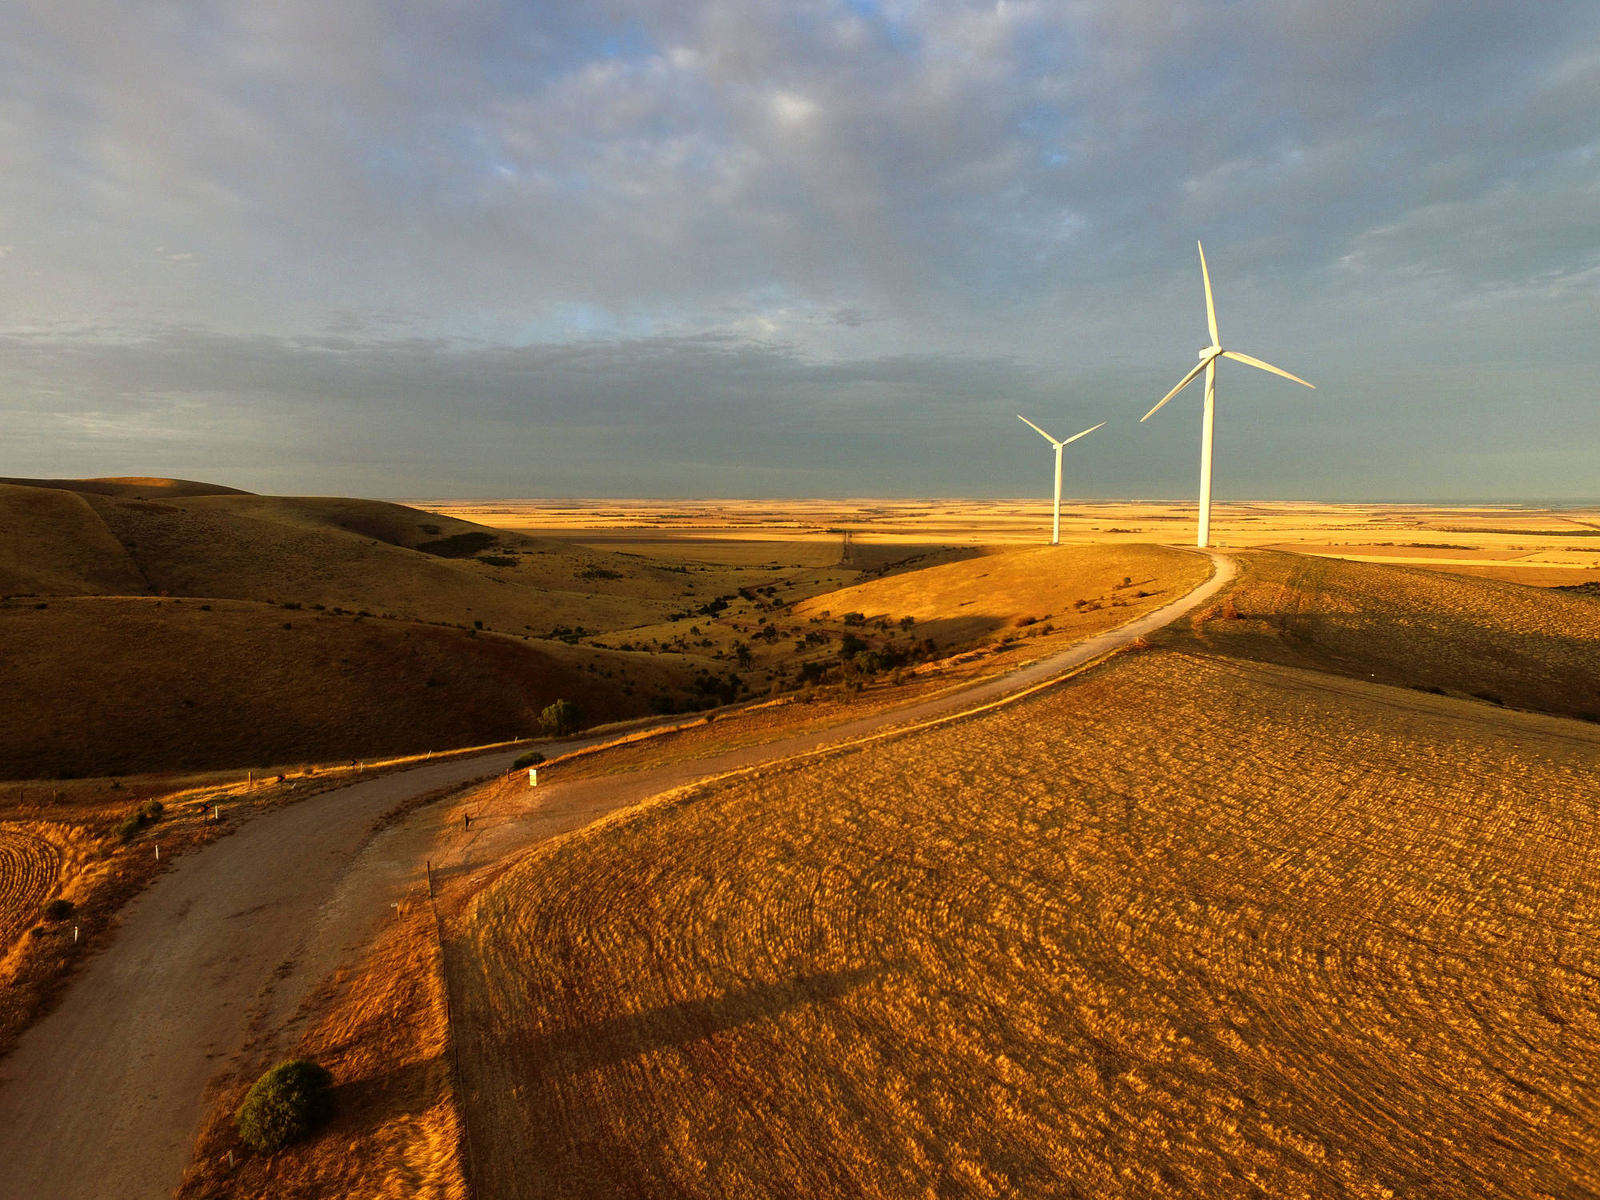 Most of South Australia is powered from solar and wind, but issues with reliability means the state often has to import power from Victoria. Clements Gap Wind Farm.   David Clark/Flickr  (CC BY-NC-ND 2.0)